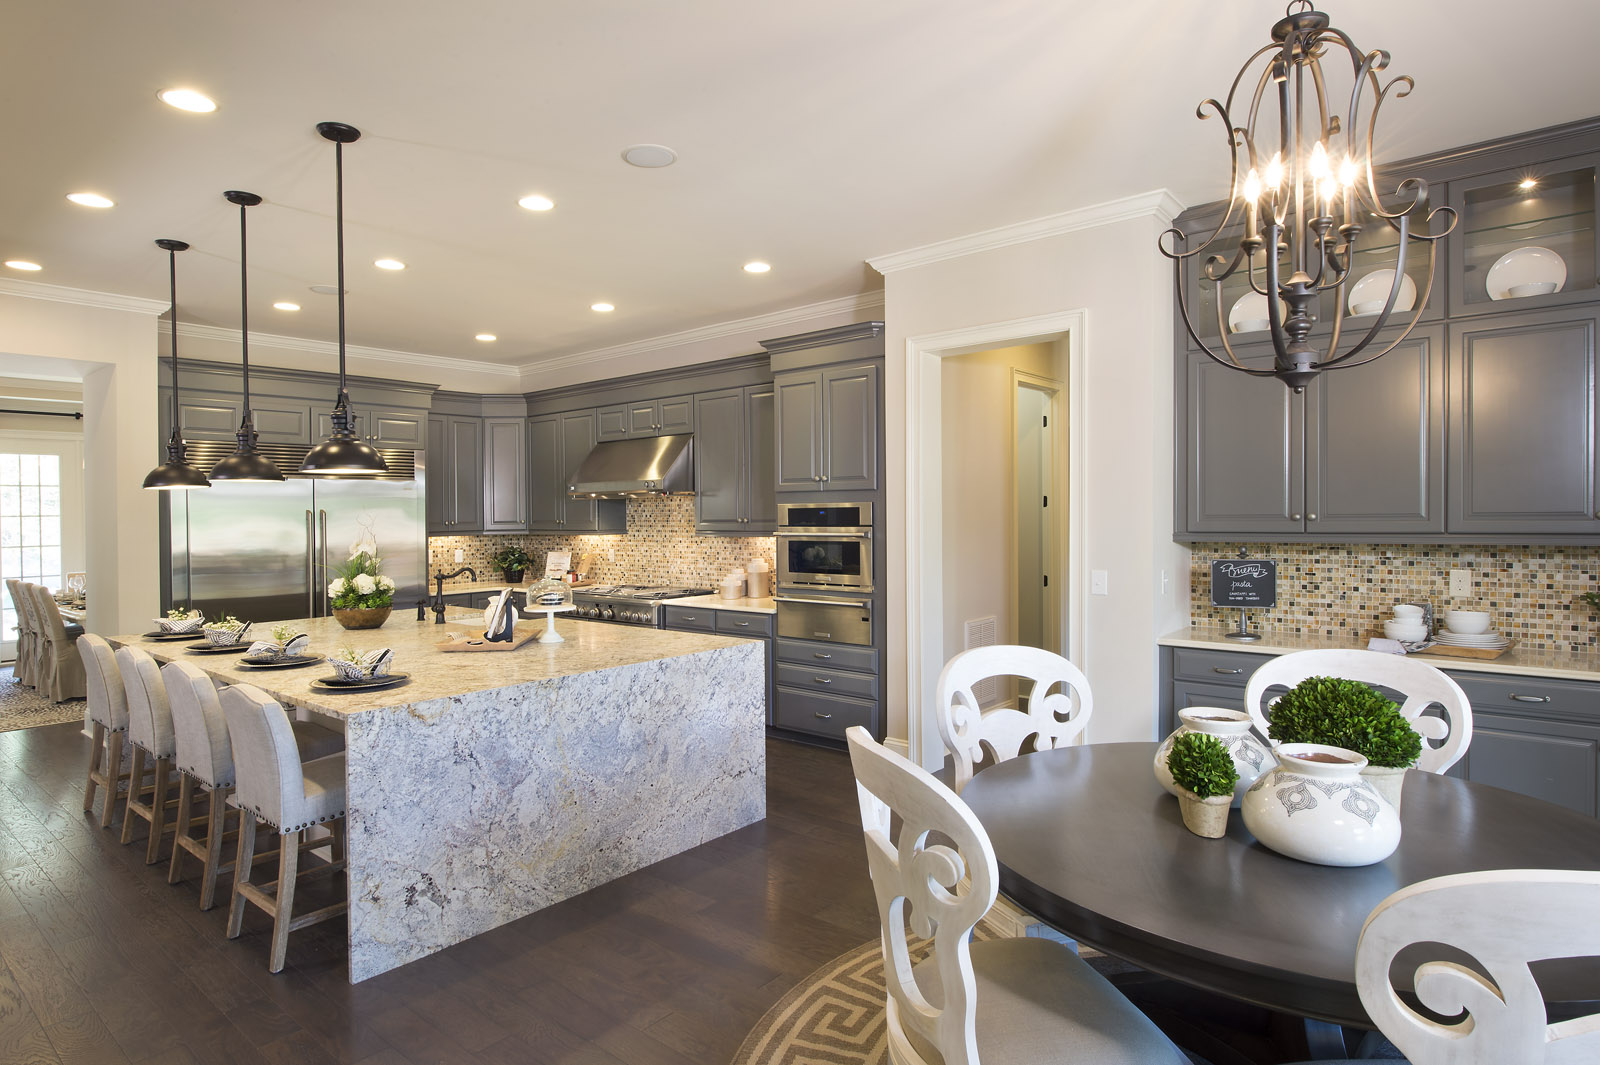 Shea homes opens new luxury model homes in weddington nc for Modern model homes